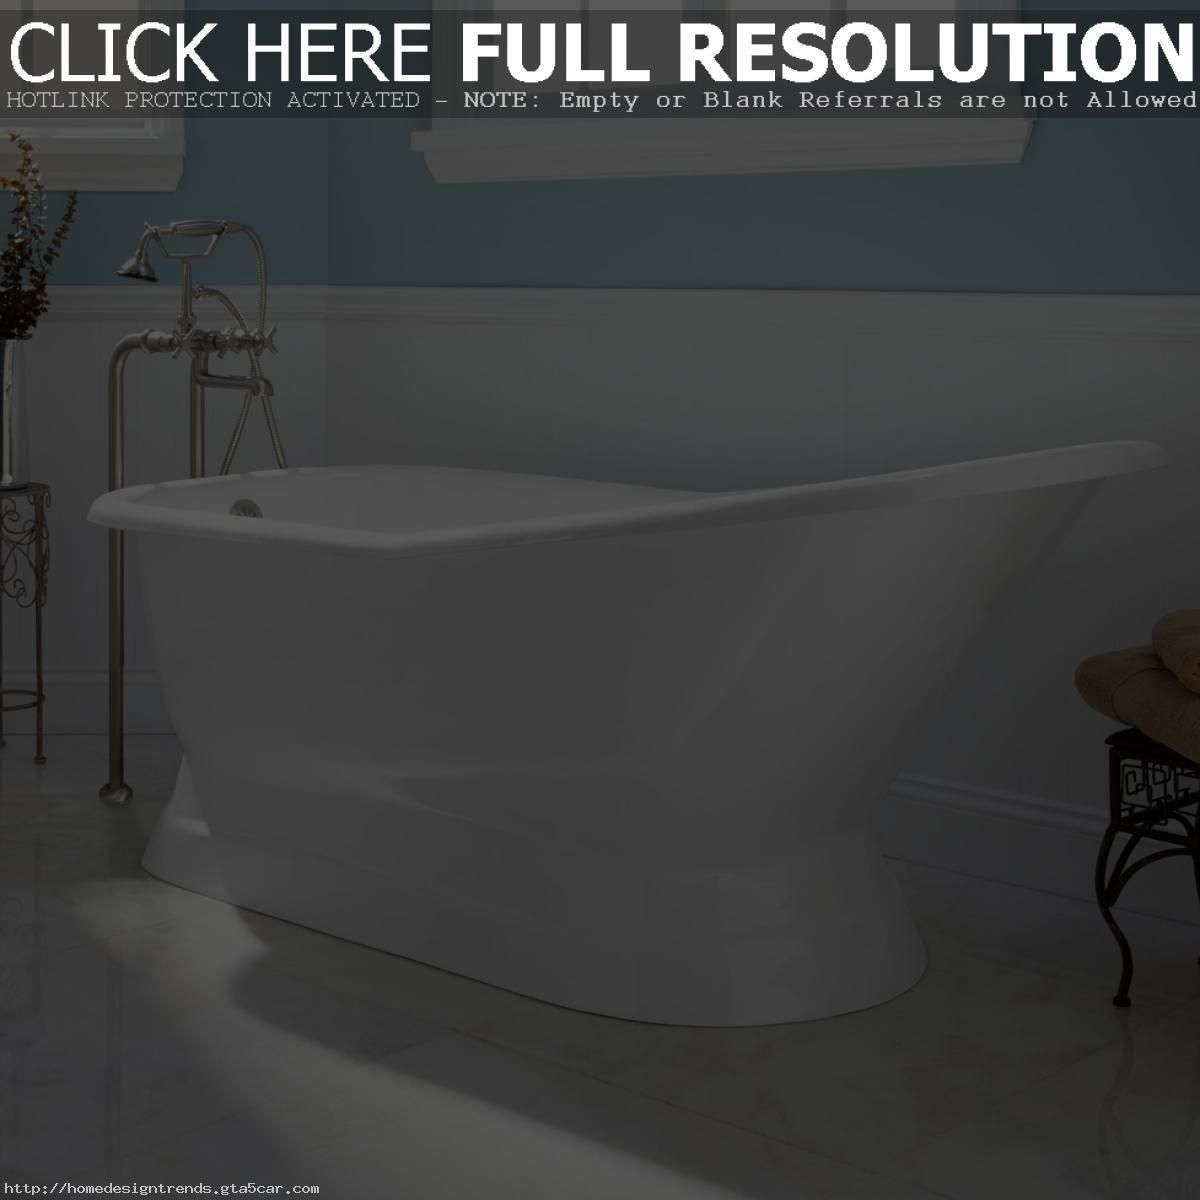 Bathtub reglazing www.bathtubrefinishingschool.com Scottsdale http ...